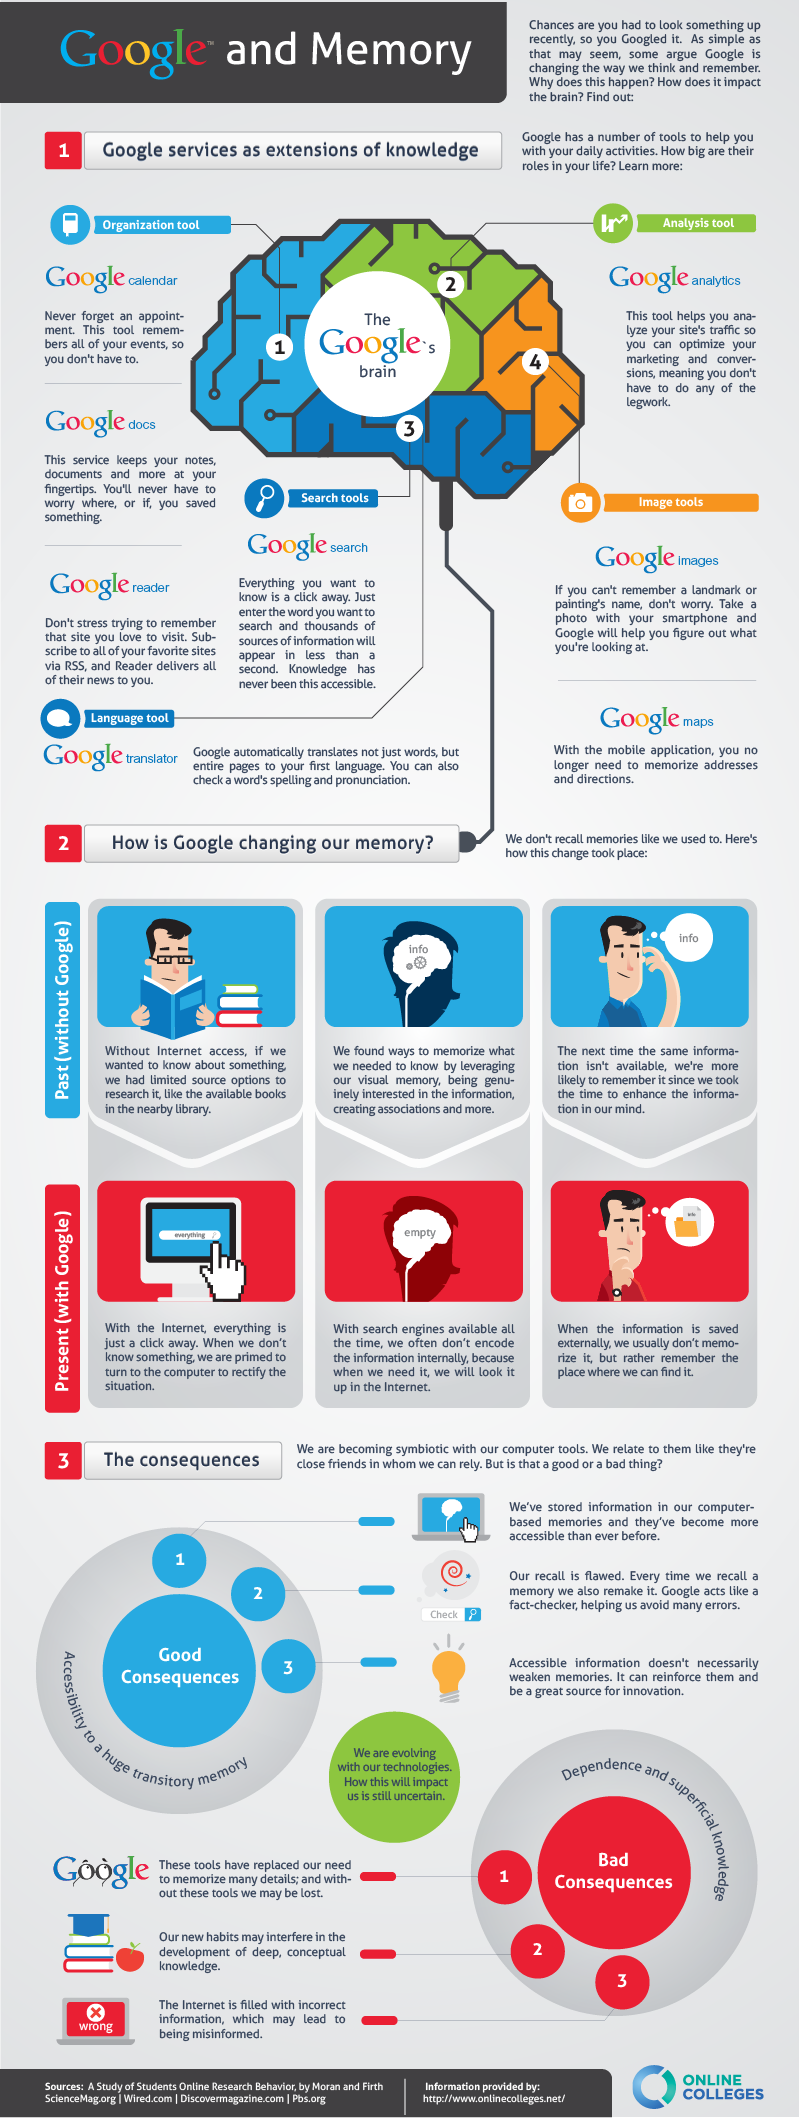 Effect of Google on Memory and Learning